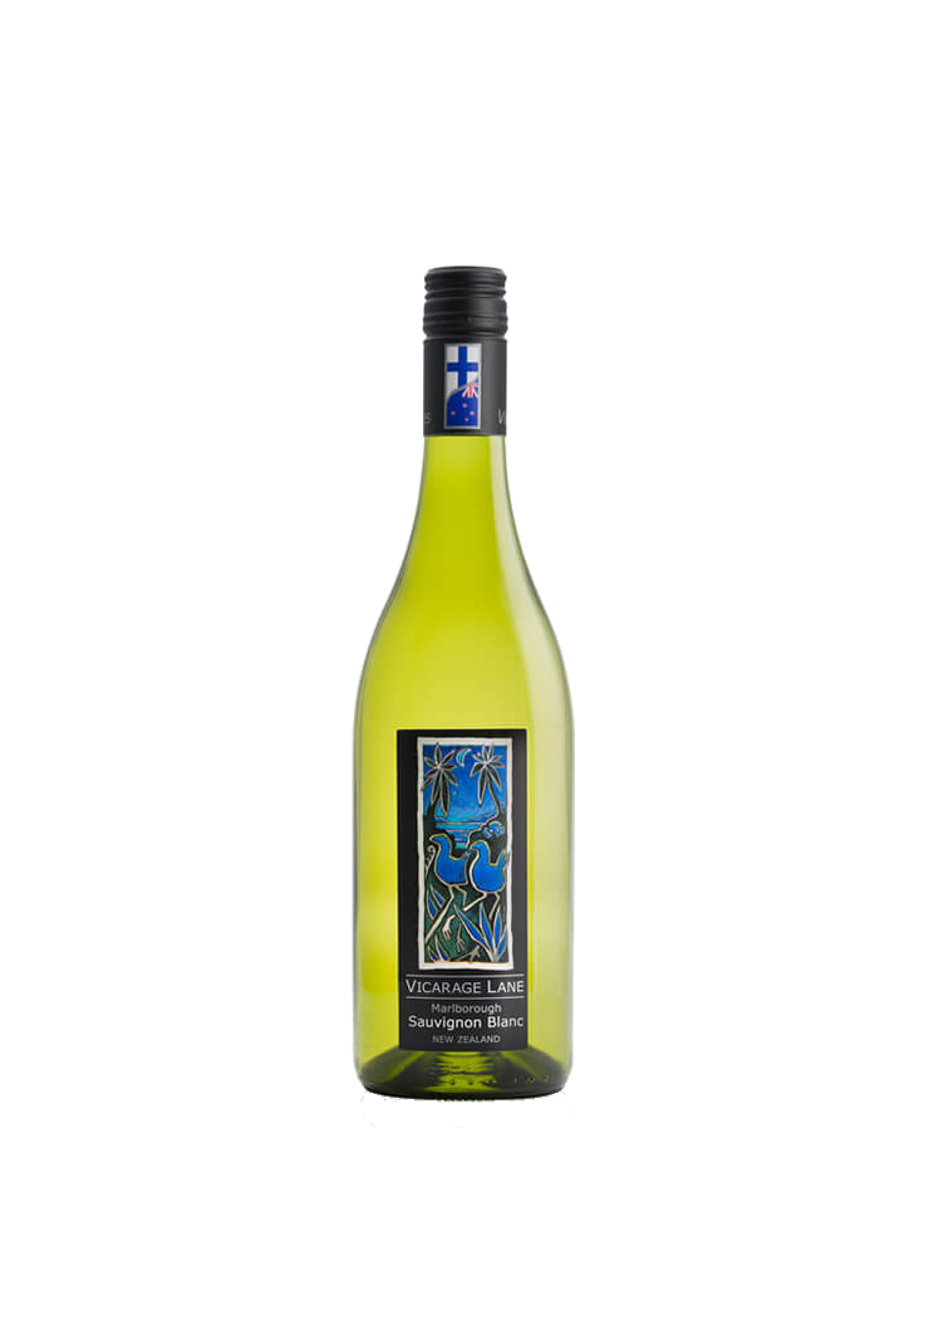 Vicarage Lane Marlborough Chardonnay 2018